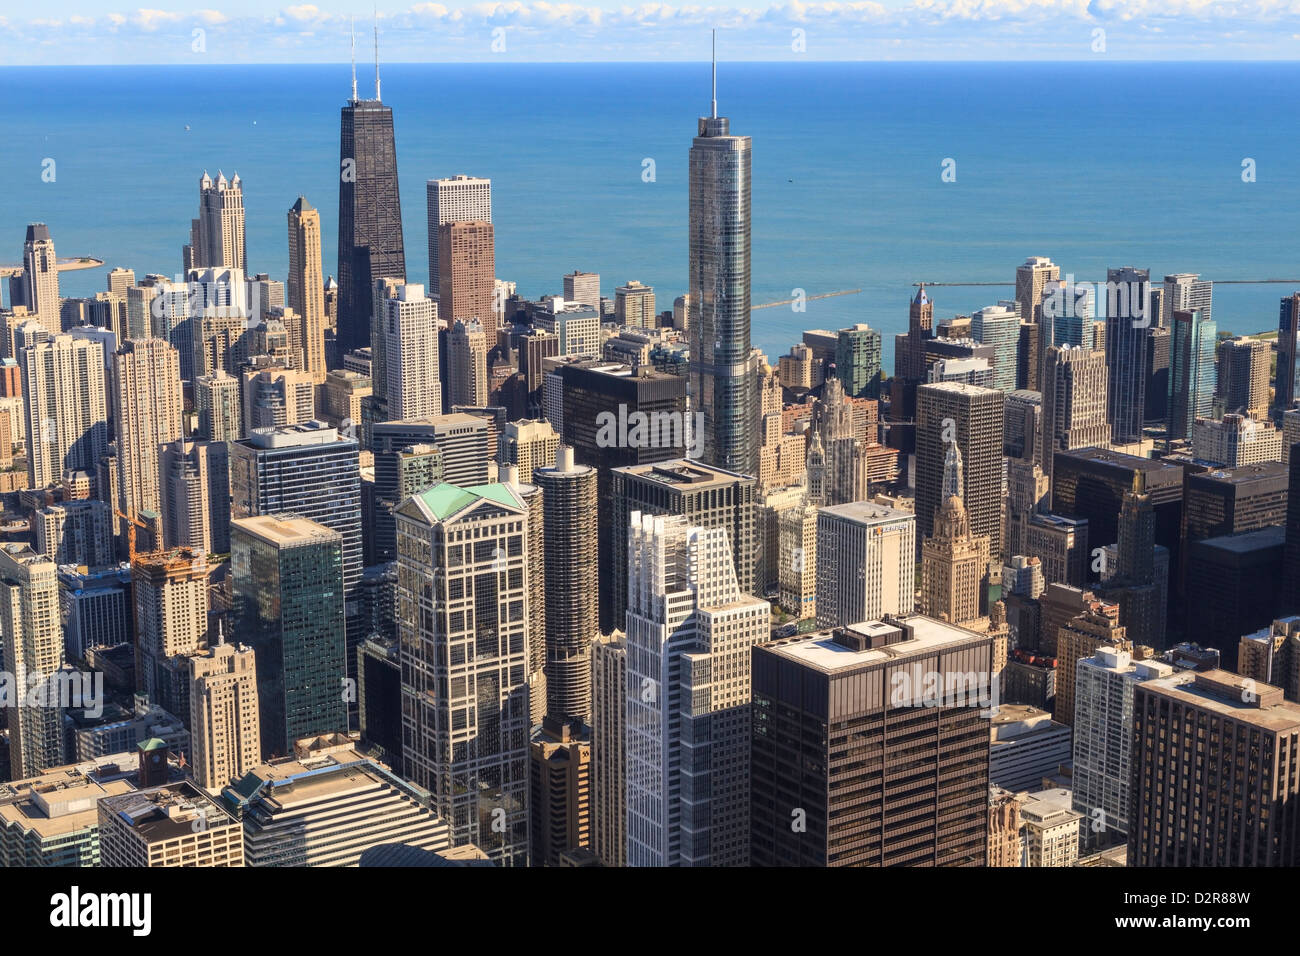 Chicago cityscape and Lake Michigan, Hancock Center and Trump Tower, Chicago, Illinois, United States of America, - Stock Image